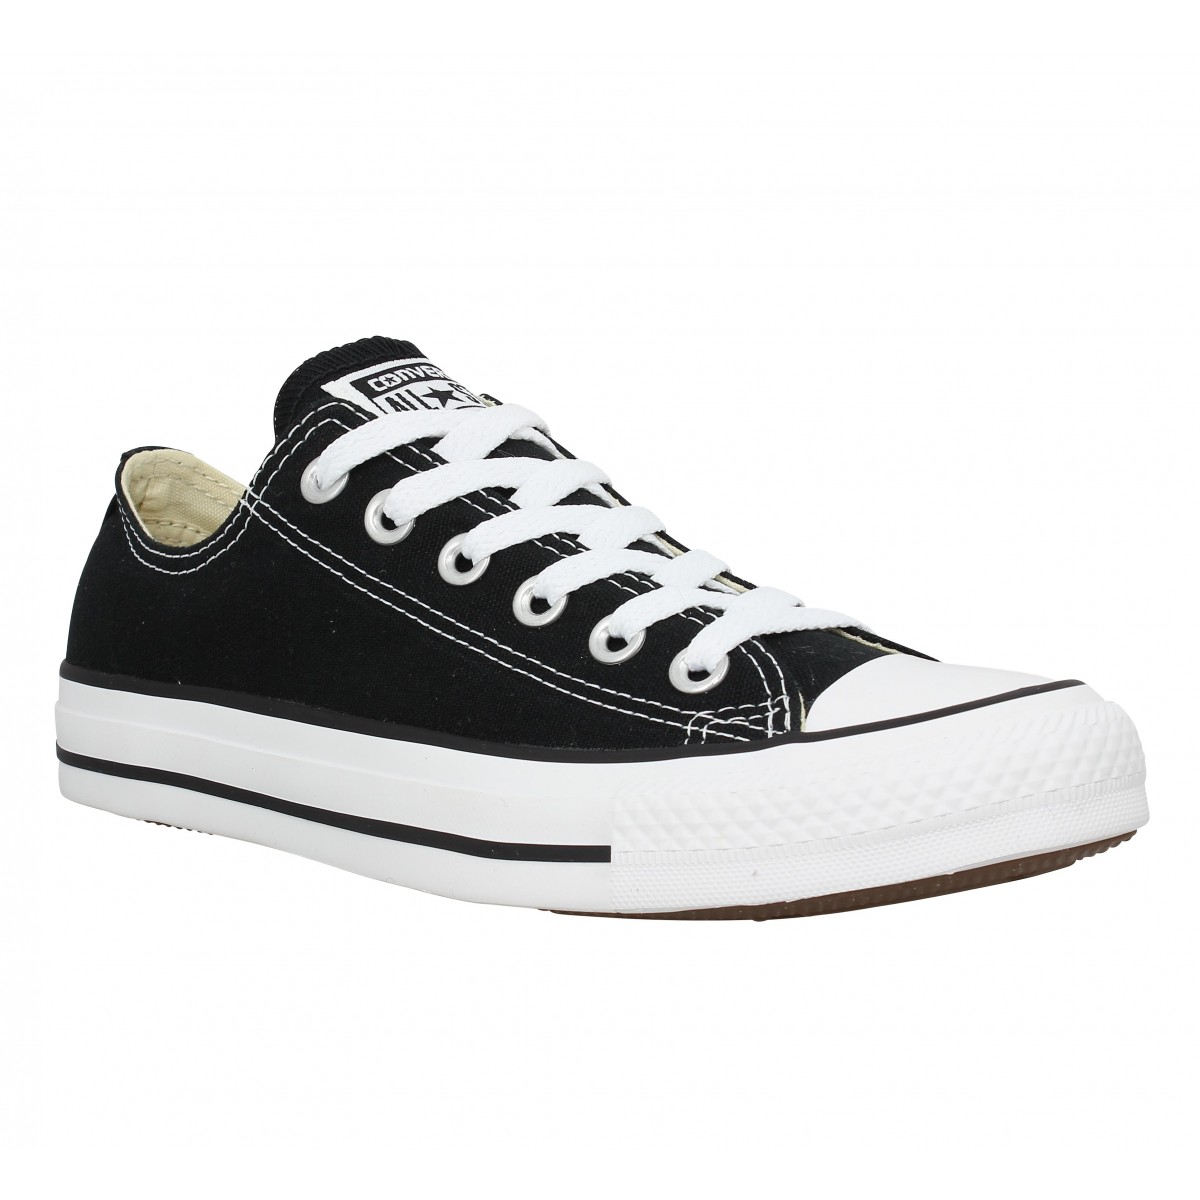 Baskets CONVERSE Chuck Taylor All Star toile Homme Noir